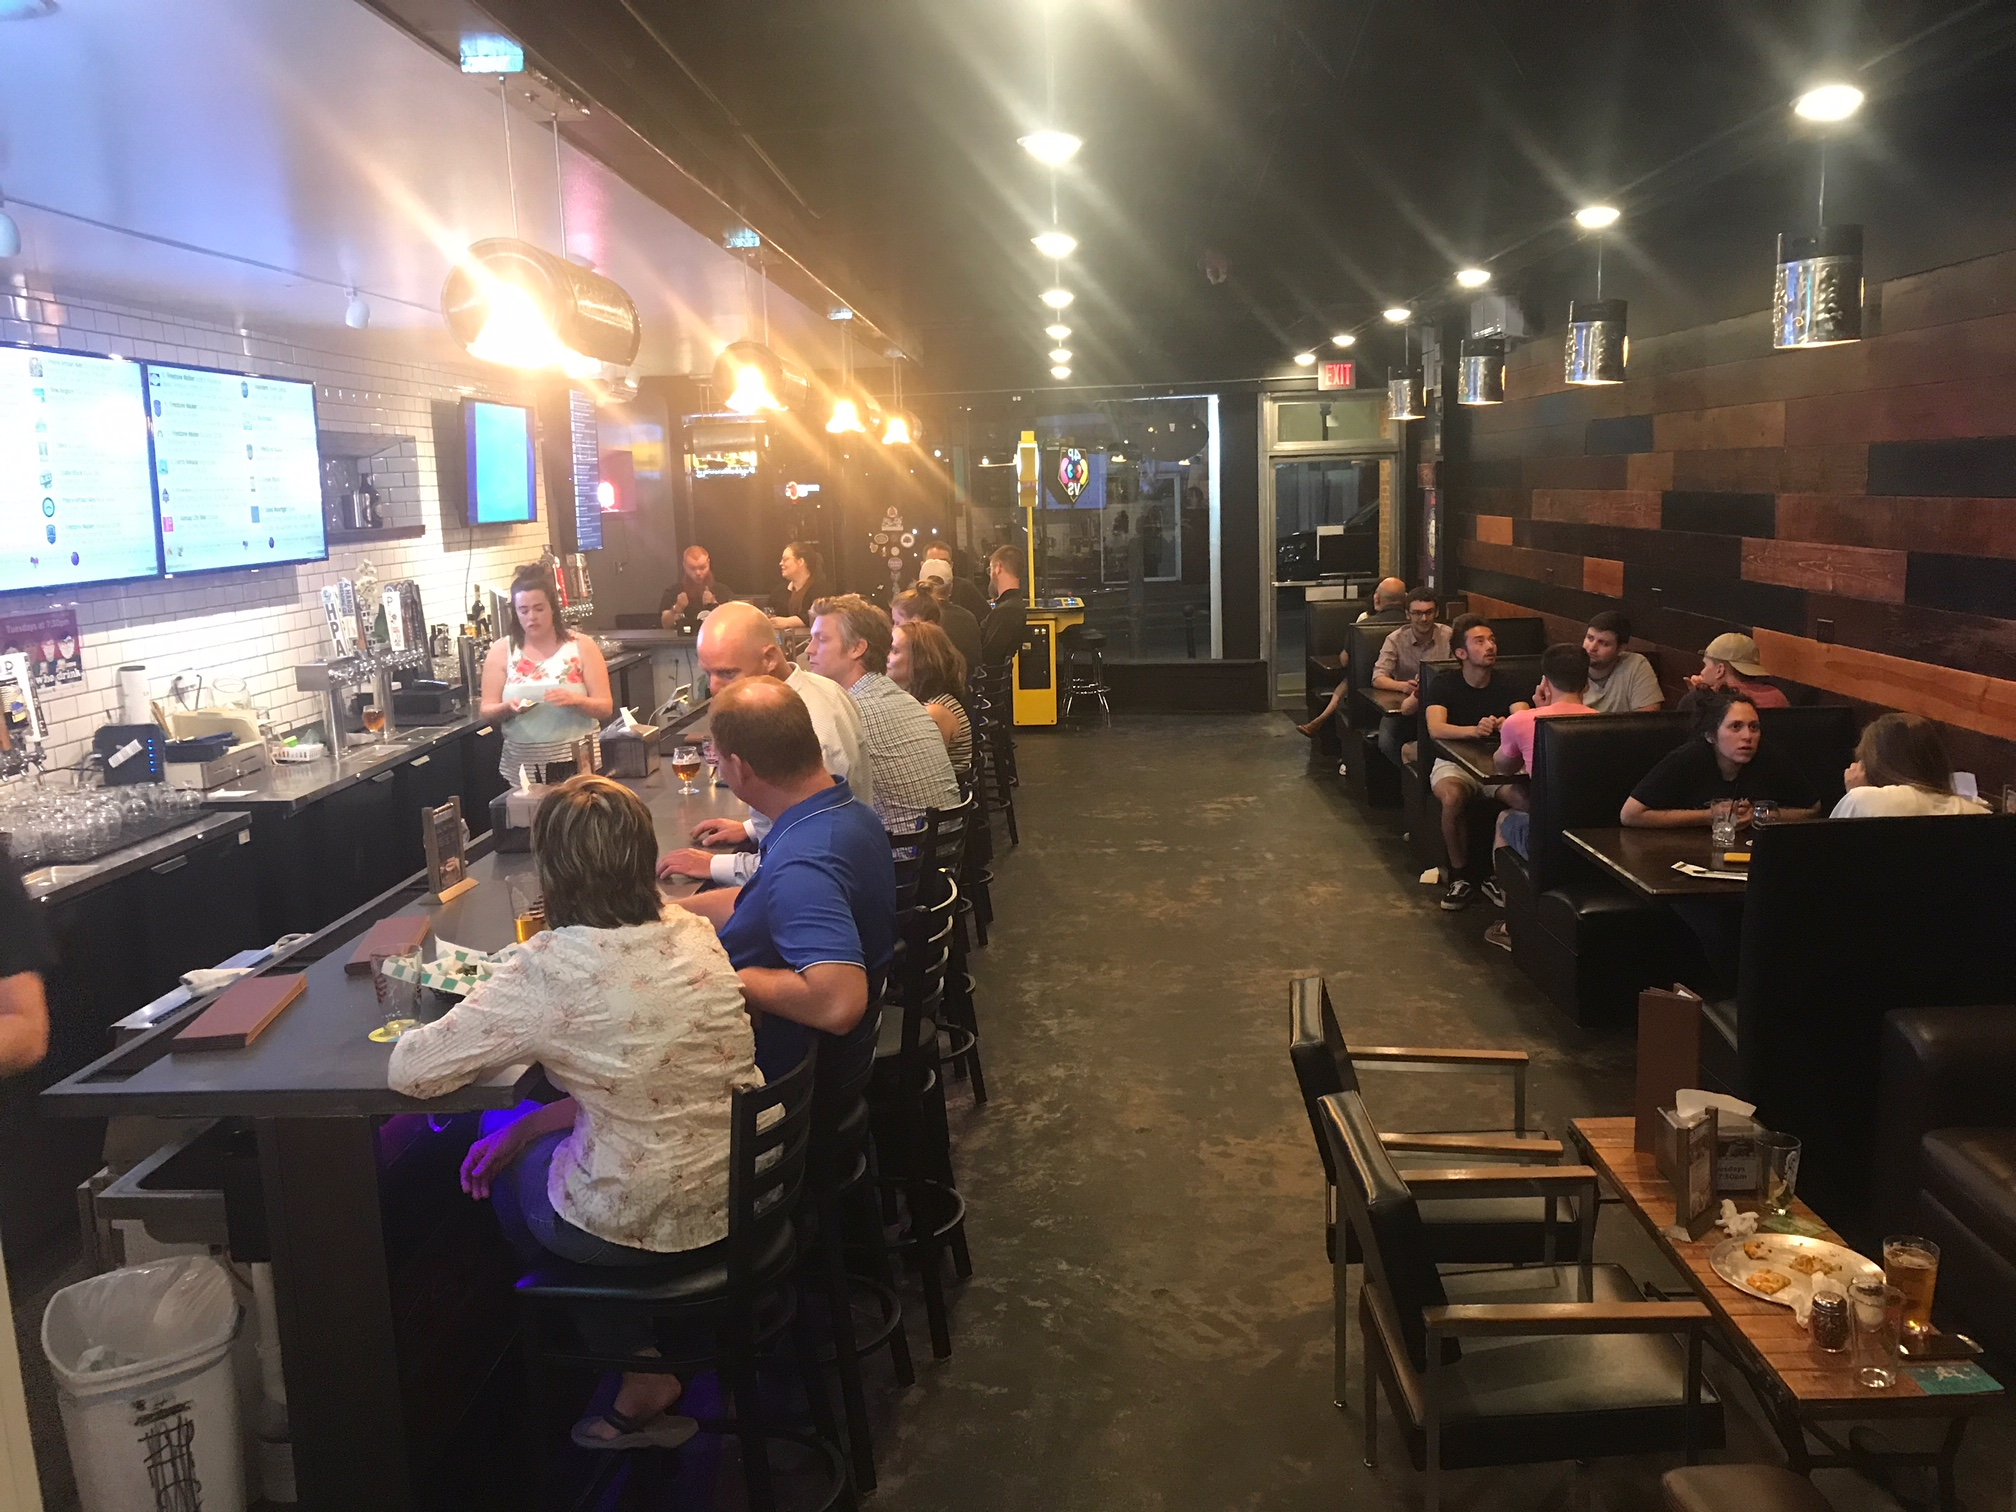 Grains & Taps, a downtown Lee's Summit bar featuring craft beer, will soon be offering its own brews as it becomes the district's third micro-brewery.